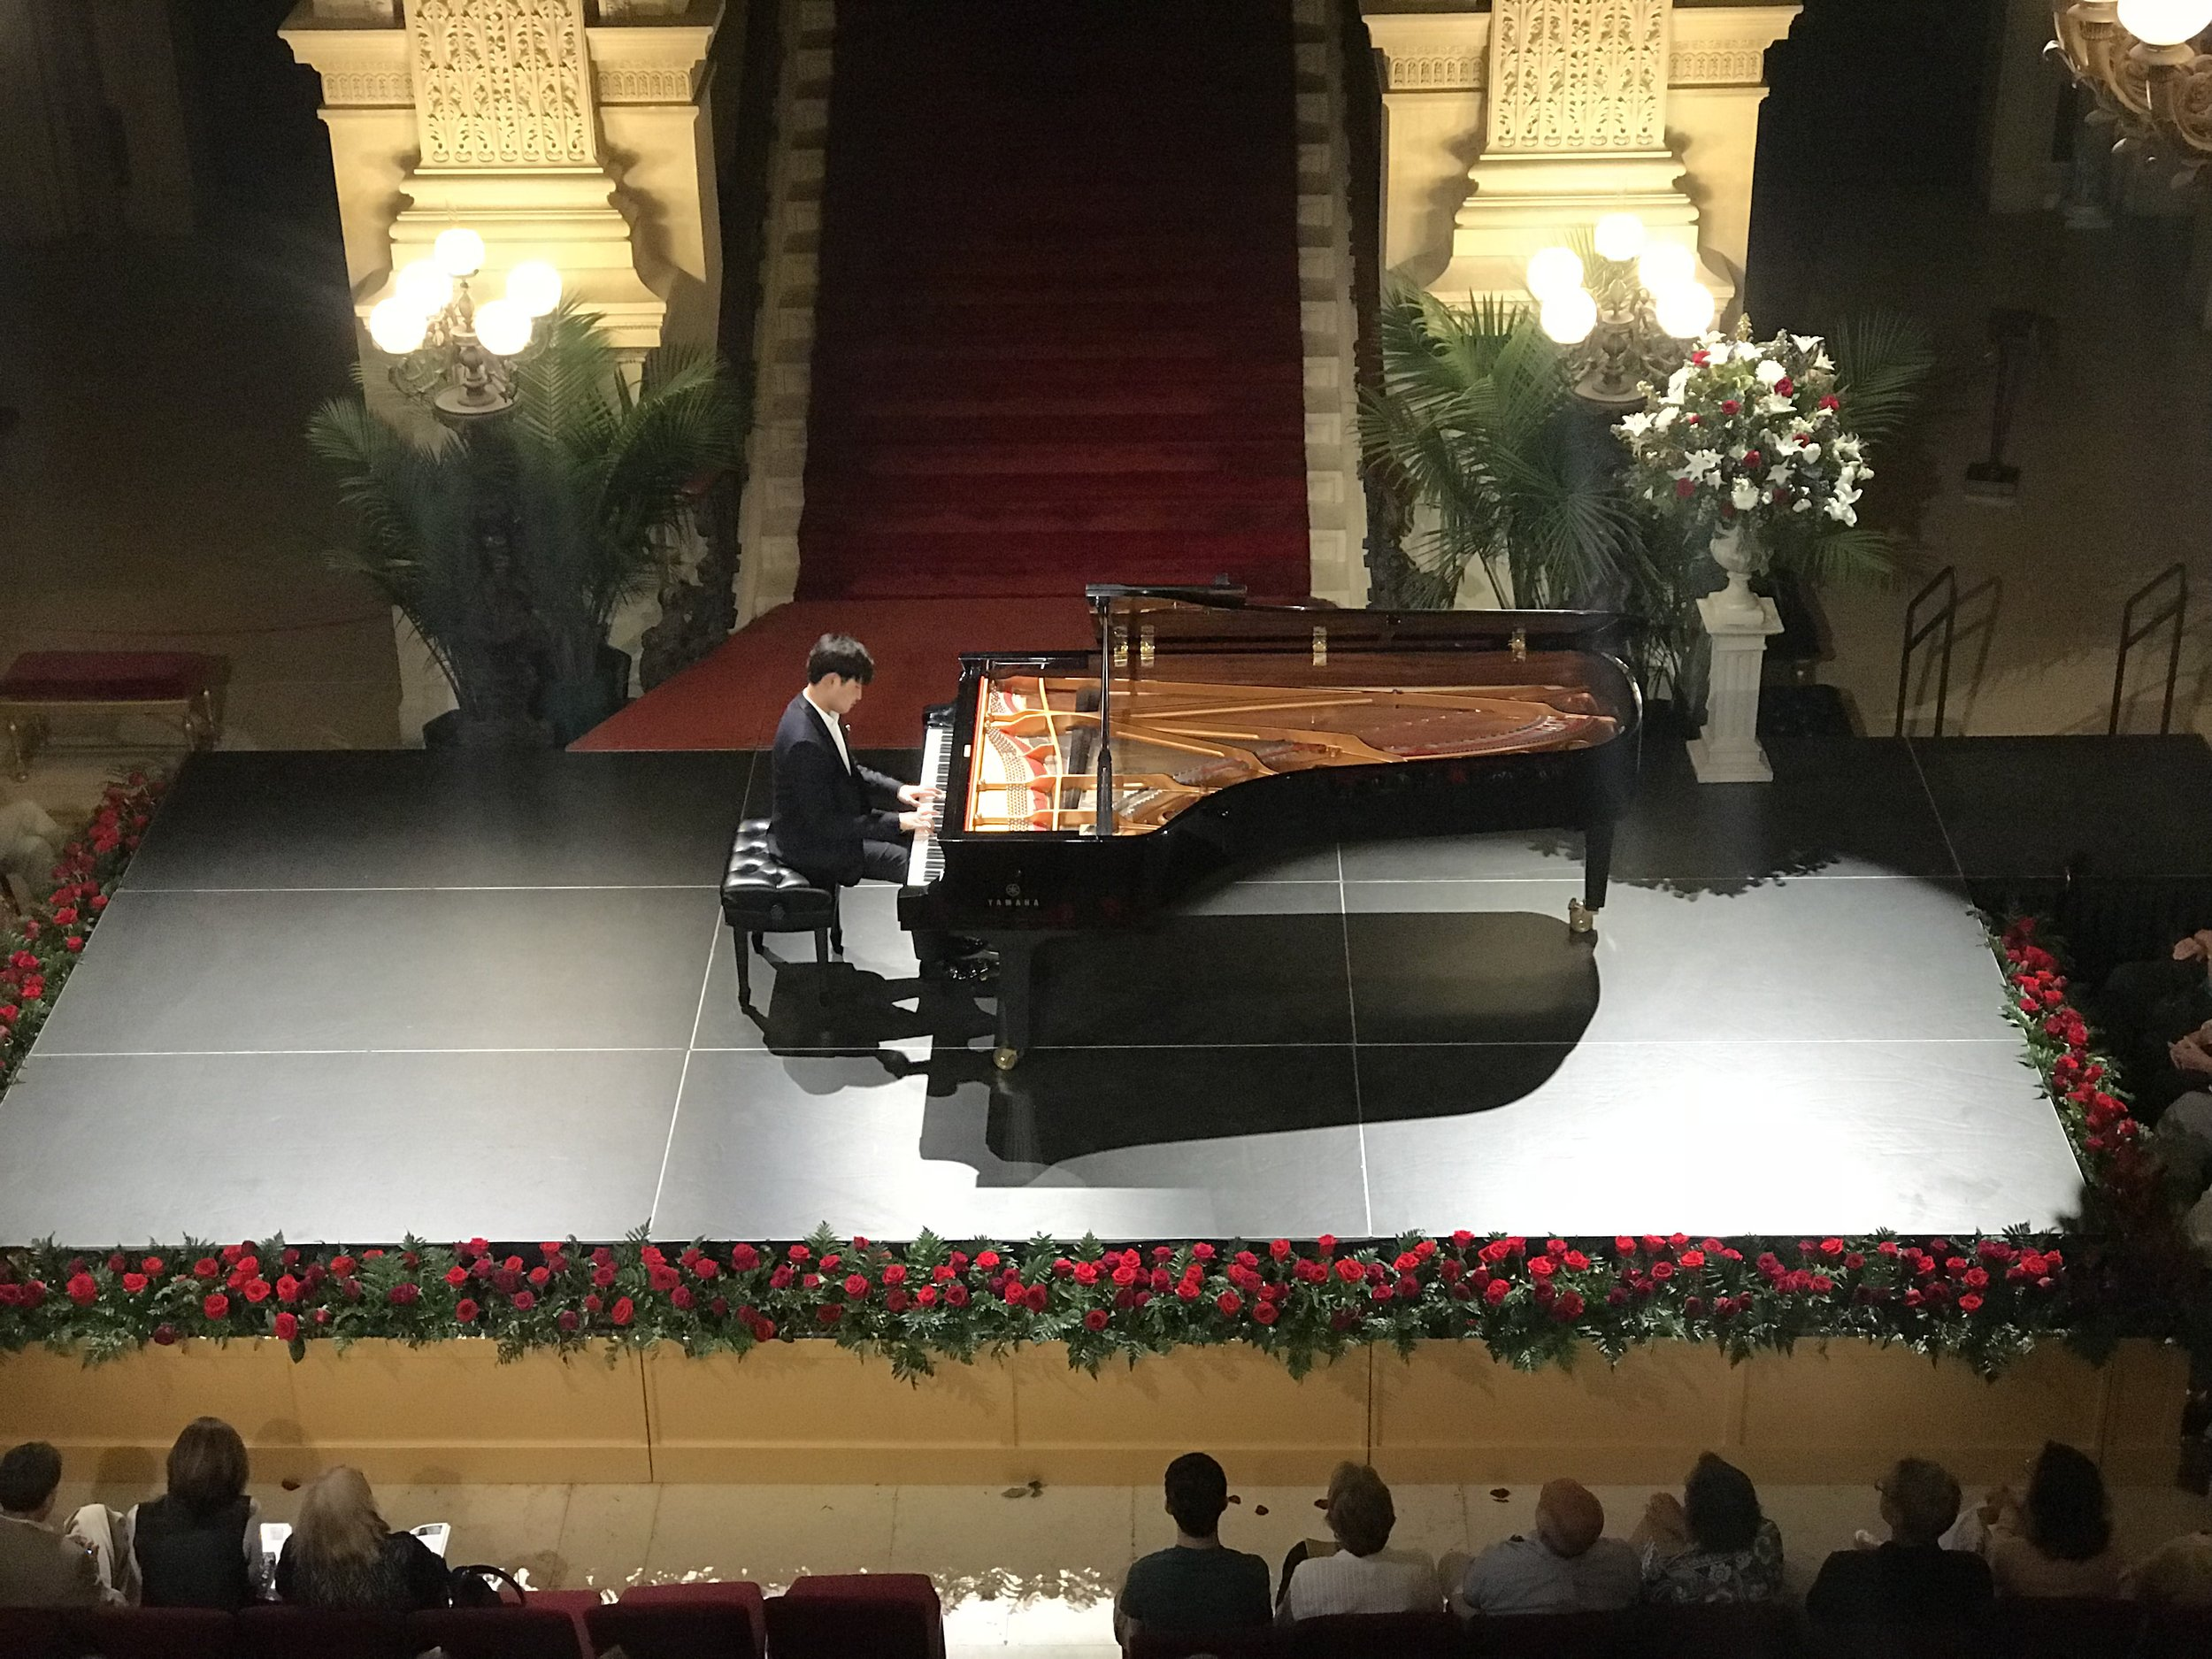 Yekwon Sunwoo, performing Grainger, Brahms, Schubert, Hamelin and others, Thursday, July 12 in the Breakers at the Newport Music Festival. Dayla Arabella Santurri photograph